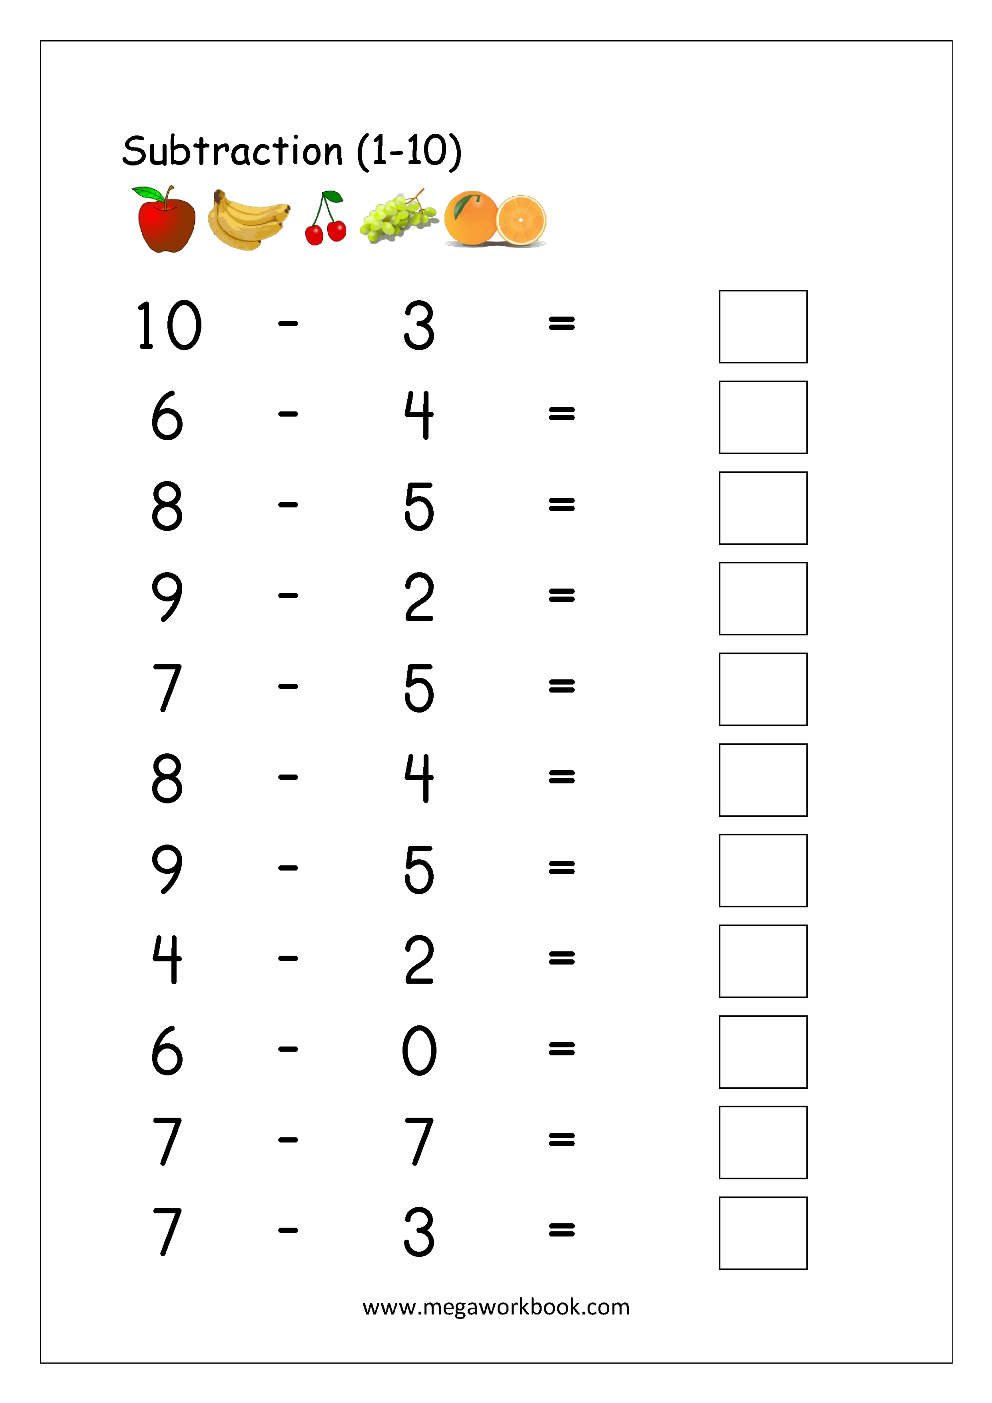 Math Worksheet - Subtraction (1-10) | Printables | Kindergarten Math